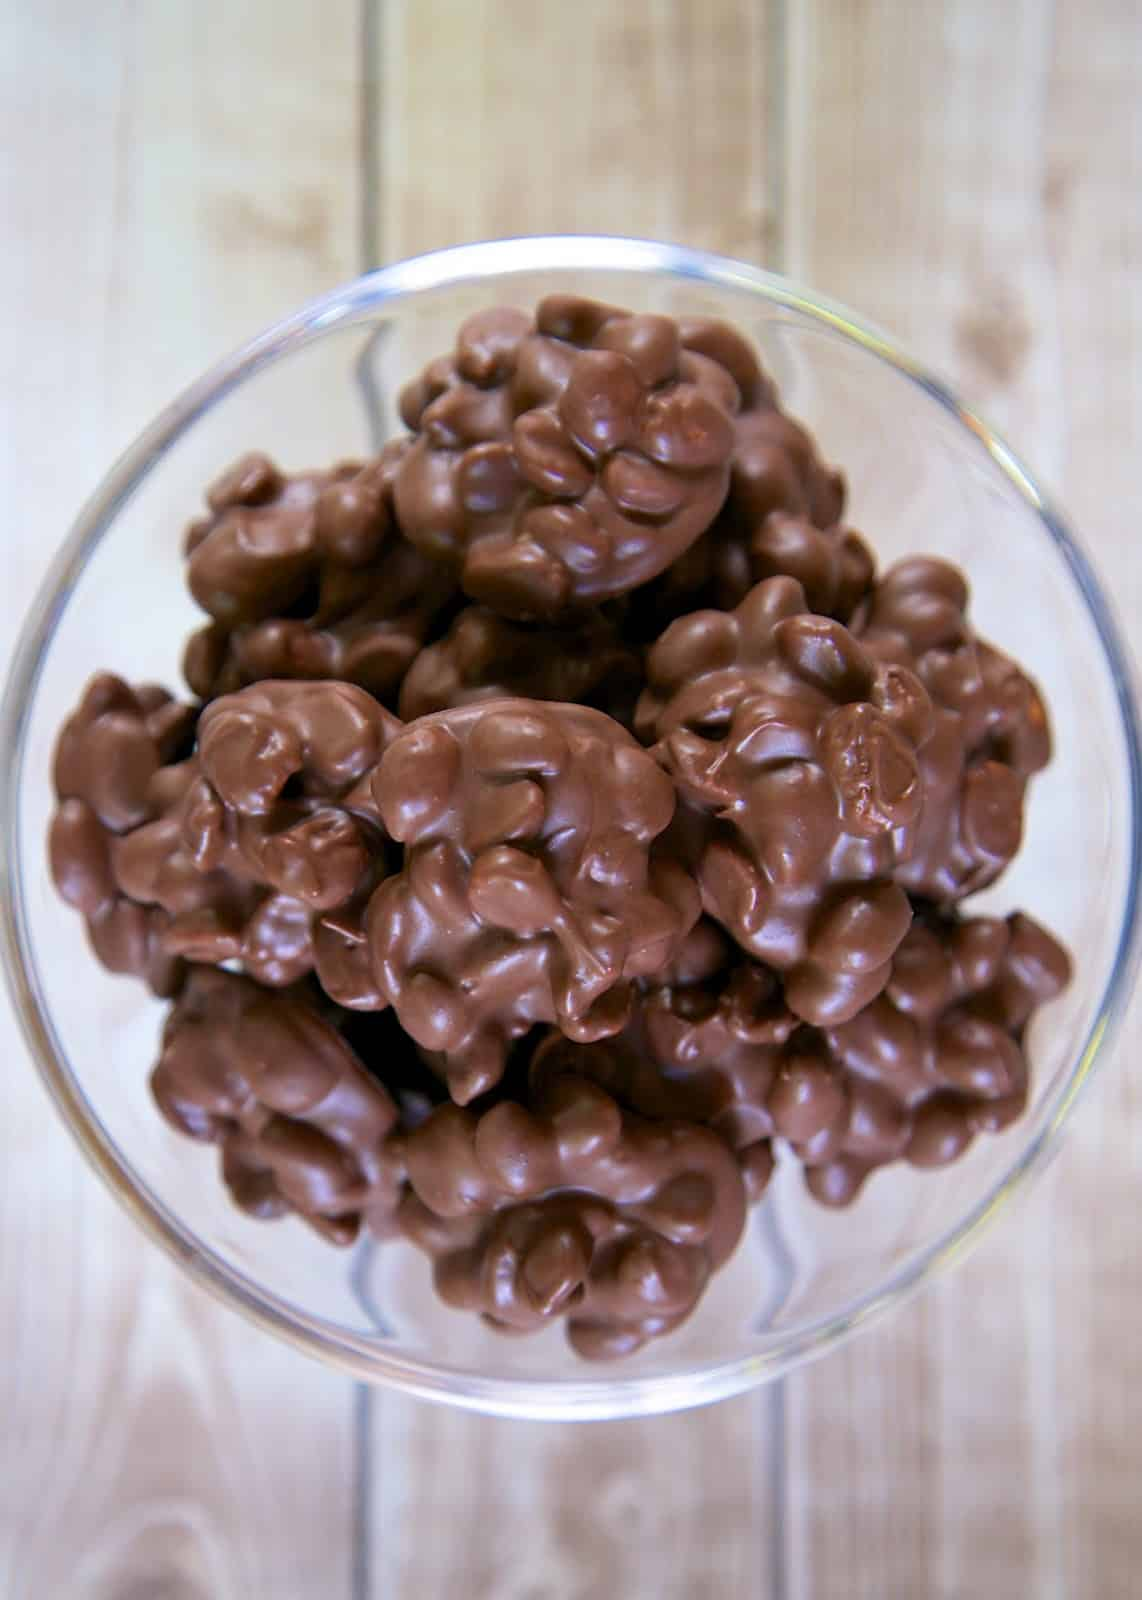 Honey Roasted Chocolate Peanuts - sweet & salty in every bite! Only 2 ingredients!!